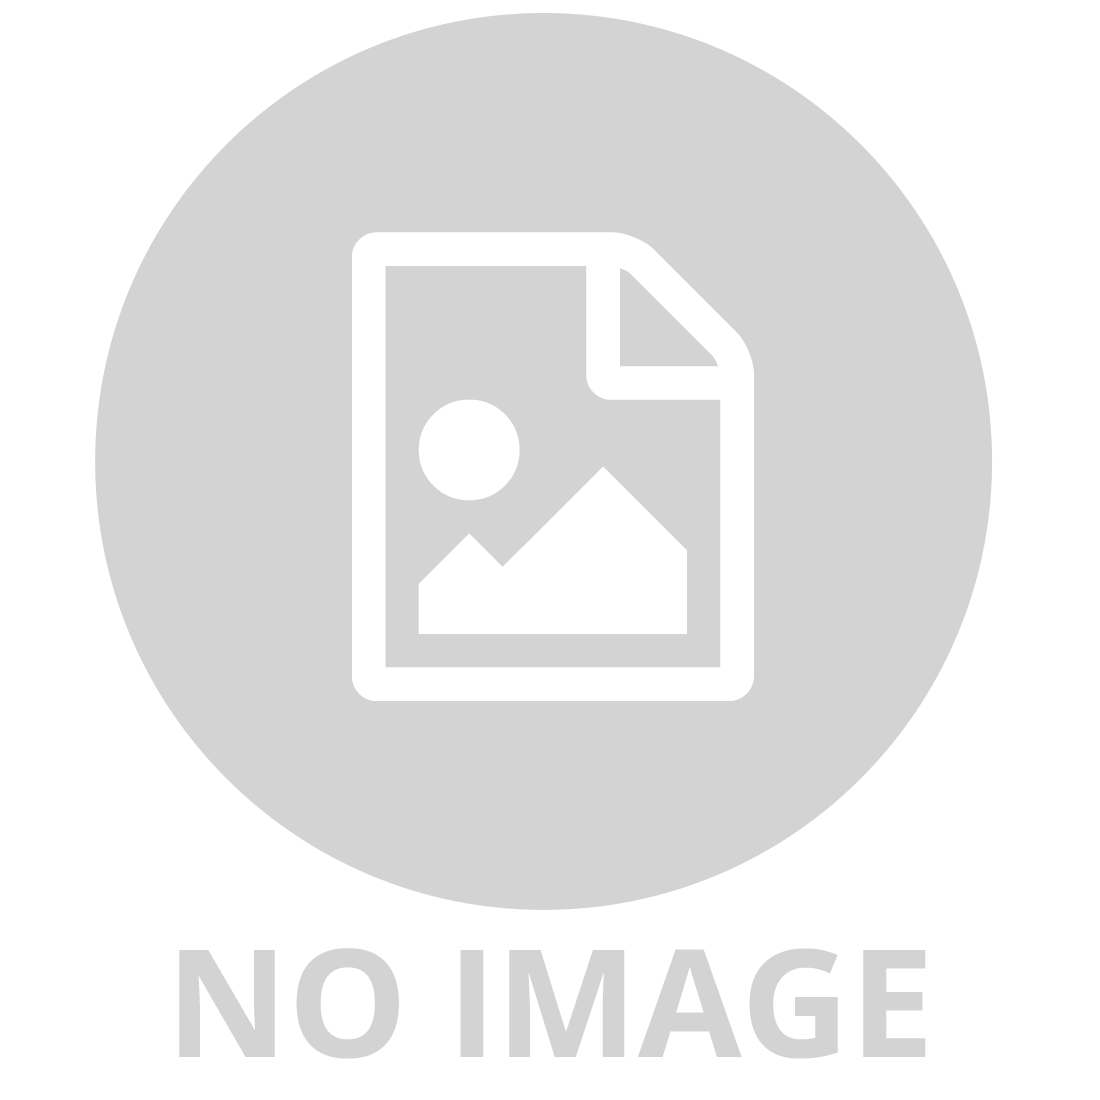 COLORIFIC 750GR PLASTER OF PARIS POWDER